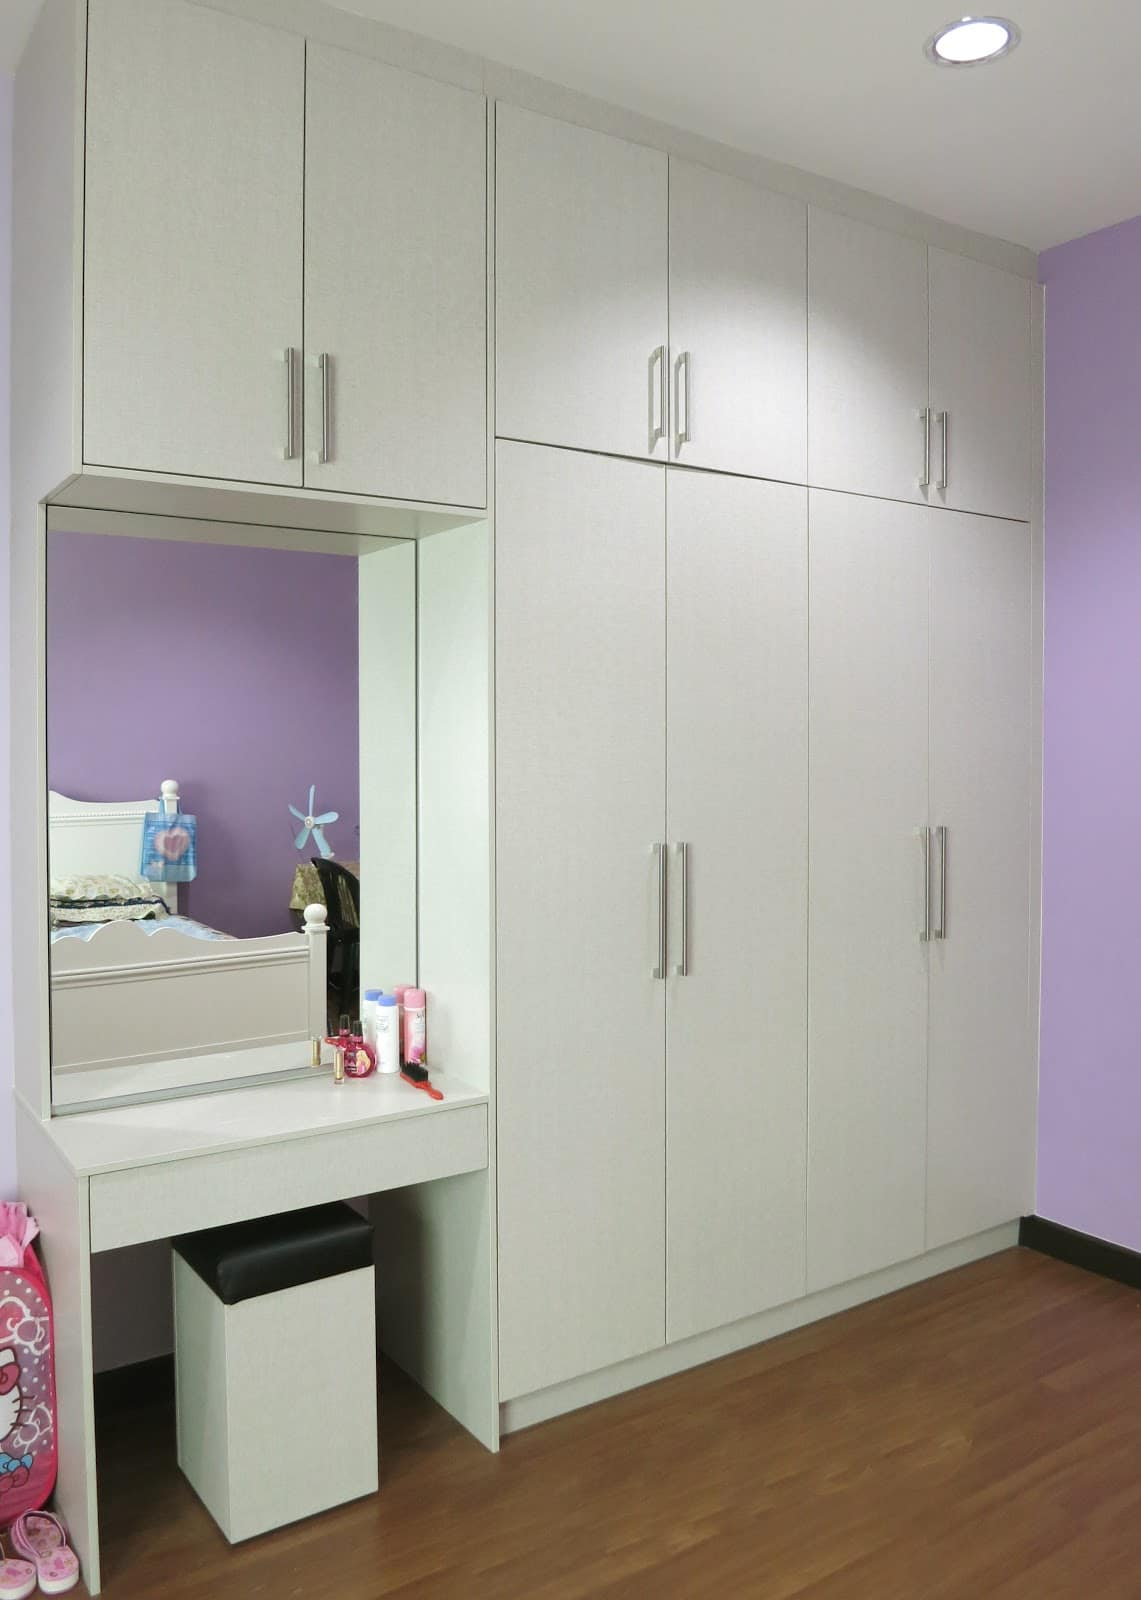 above ceiling height built in wardrobe with mirror vanity by intech kitchen - Built In Wardrobe